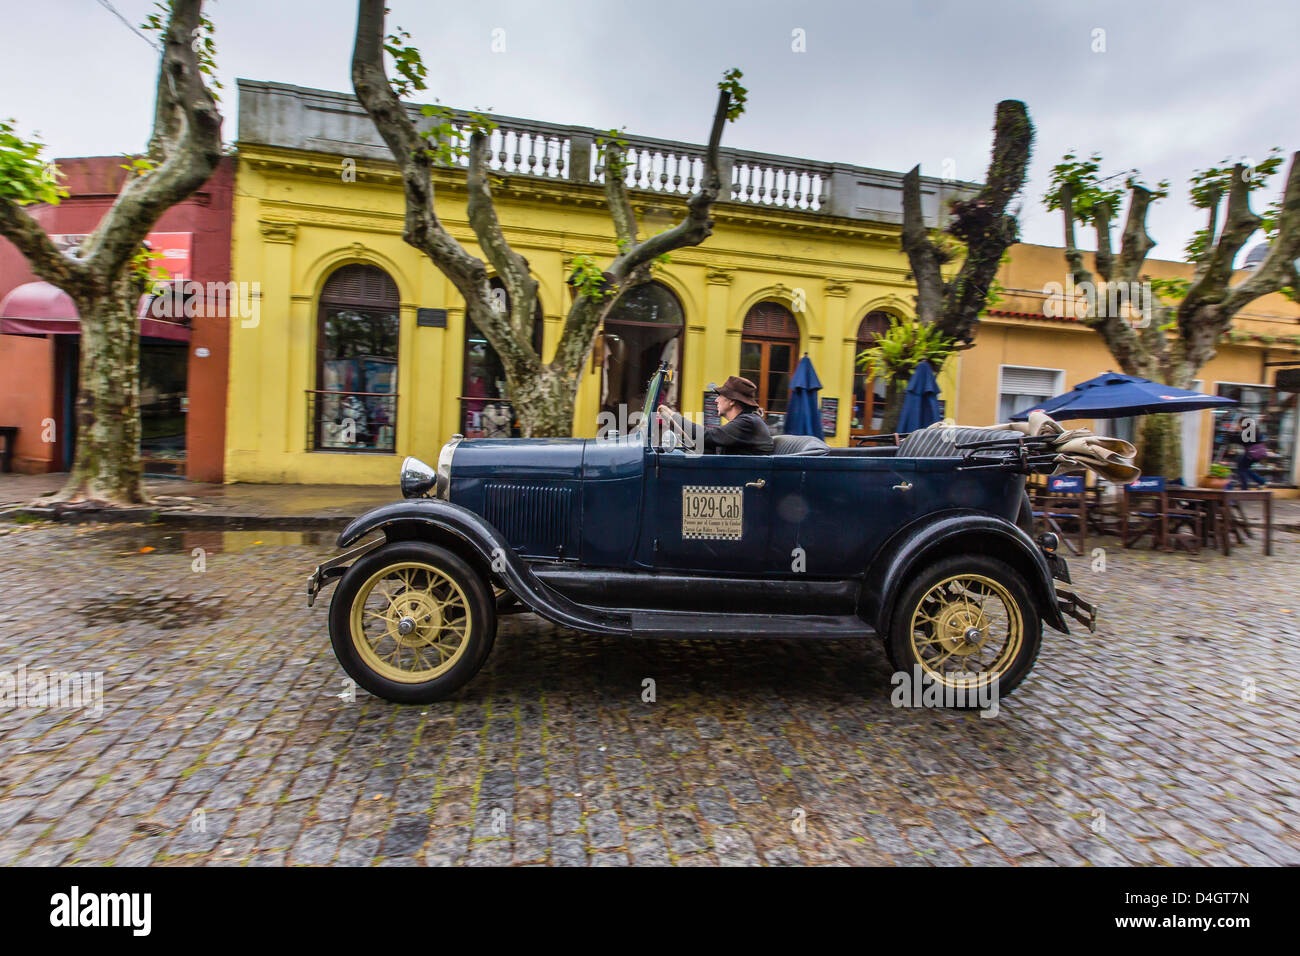 Old car used as taxi on cobblestone street in Colonia del Sacramento ...